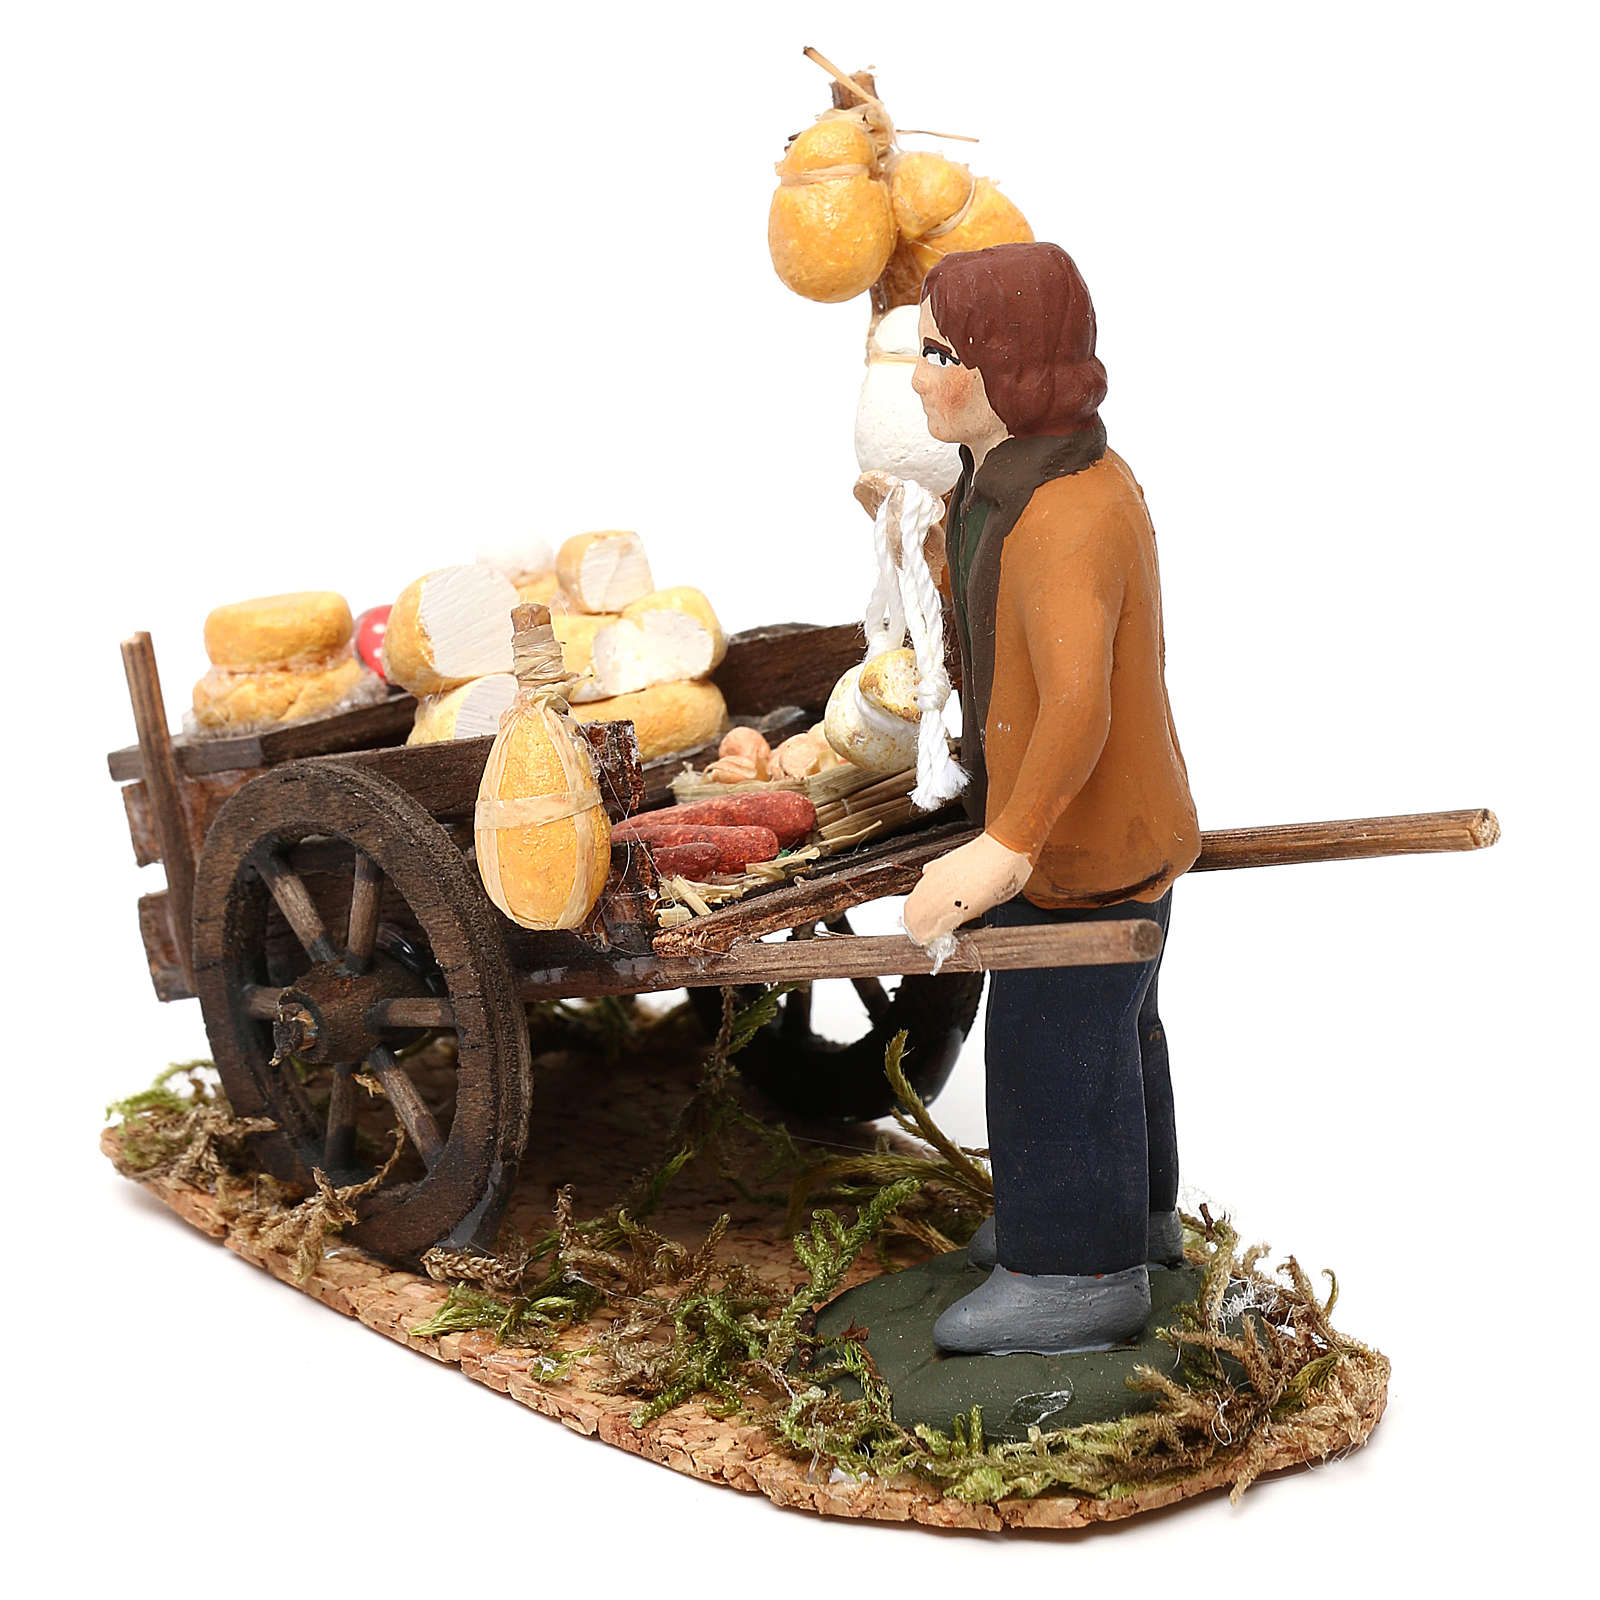 Cured meats cart with seller for Neapolitan Nativity scene 8 cm 4